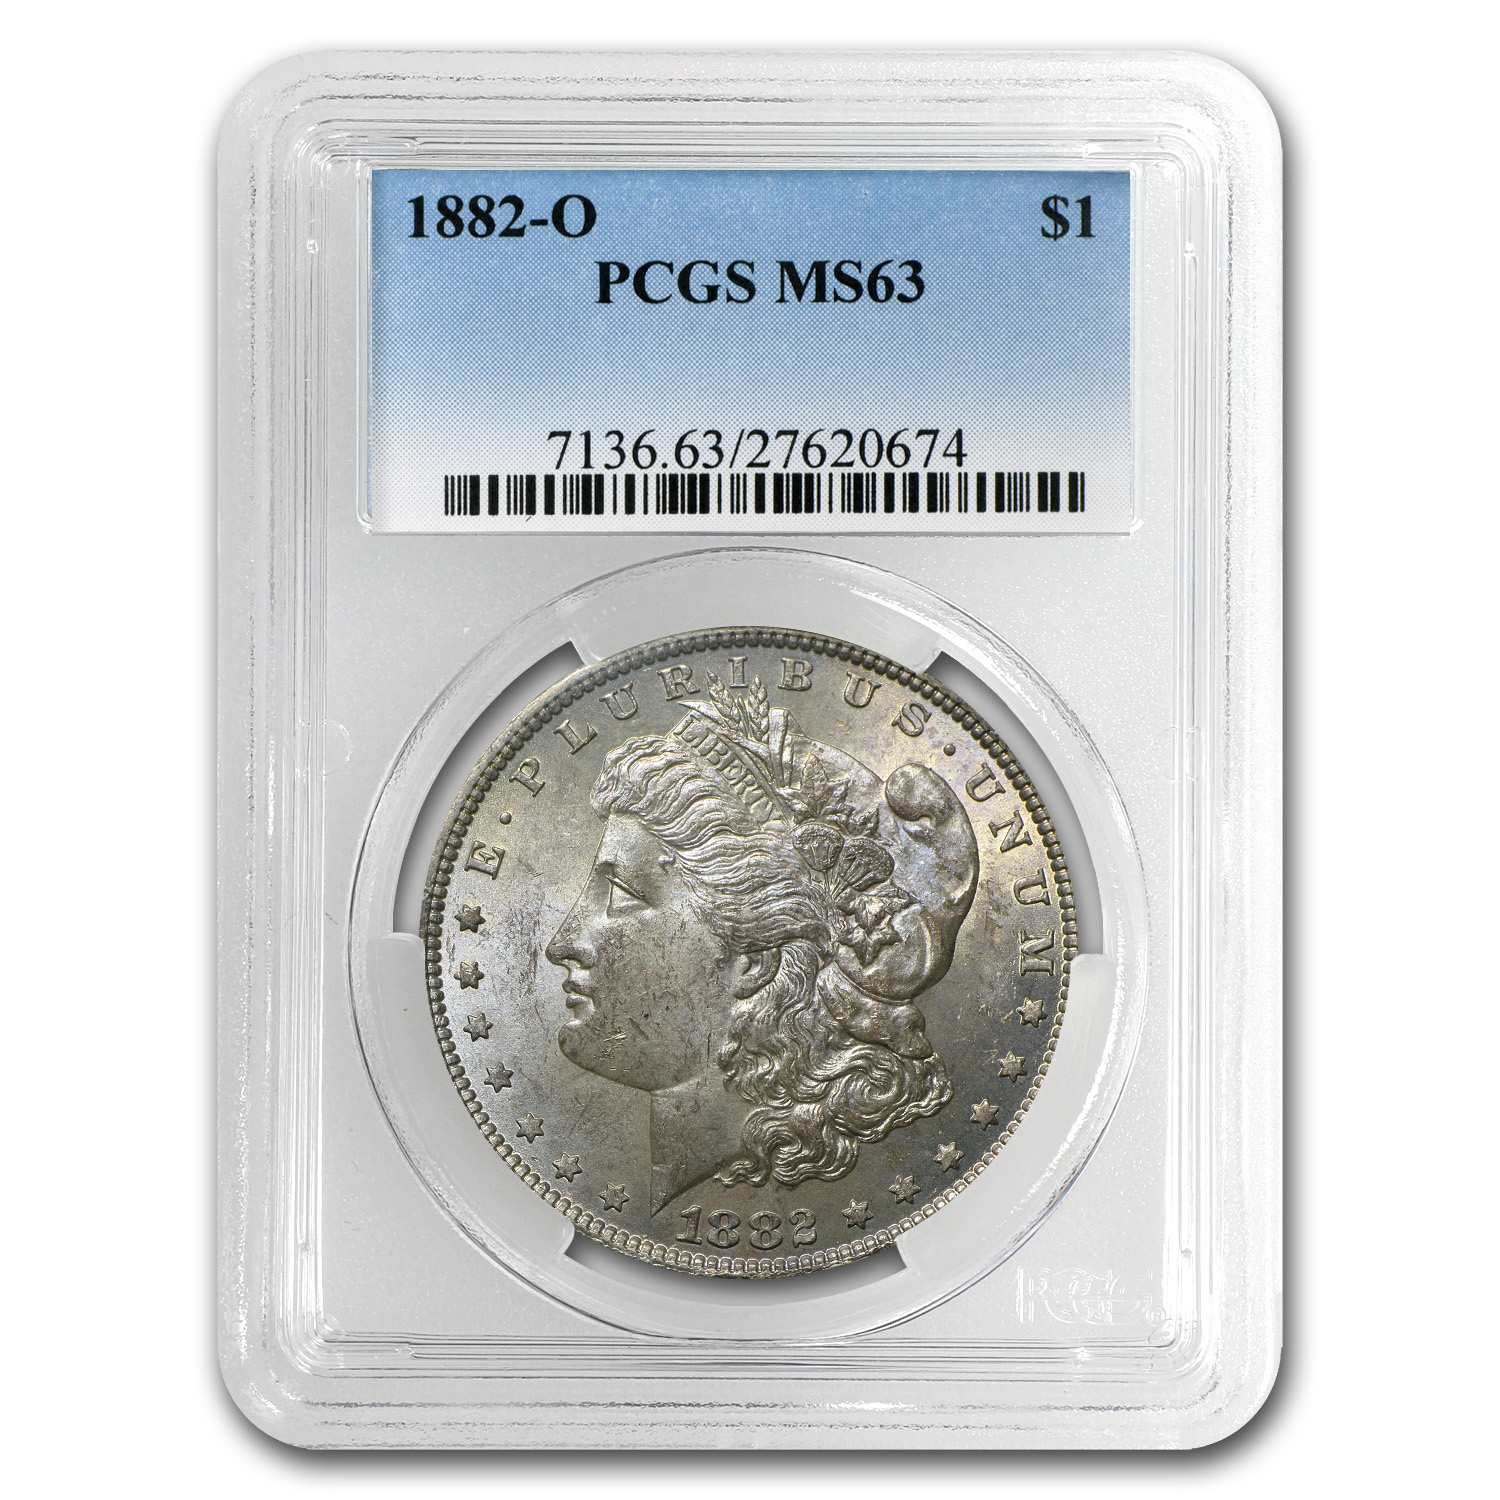 1878-1904 Morgan Dollars - MS-63 PCGS (Toned Obverse/Reverse)